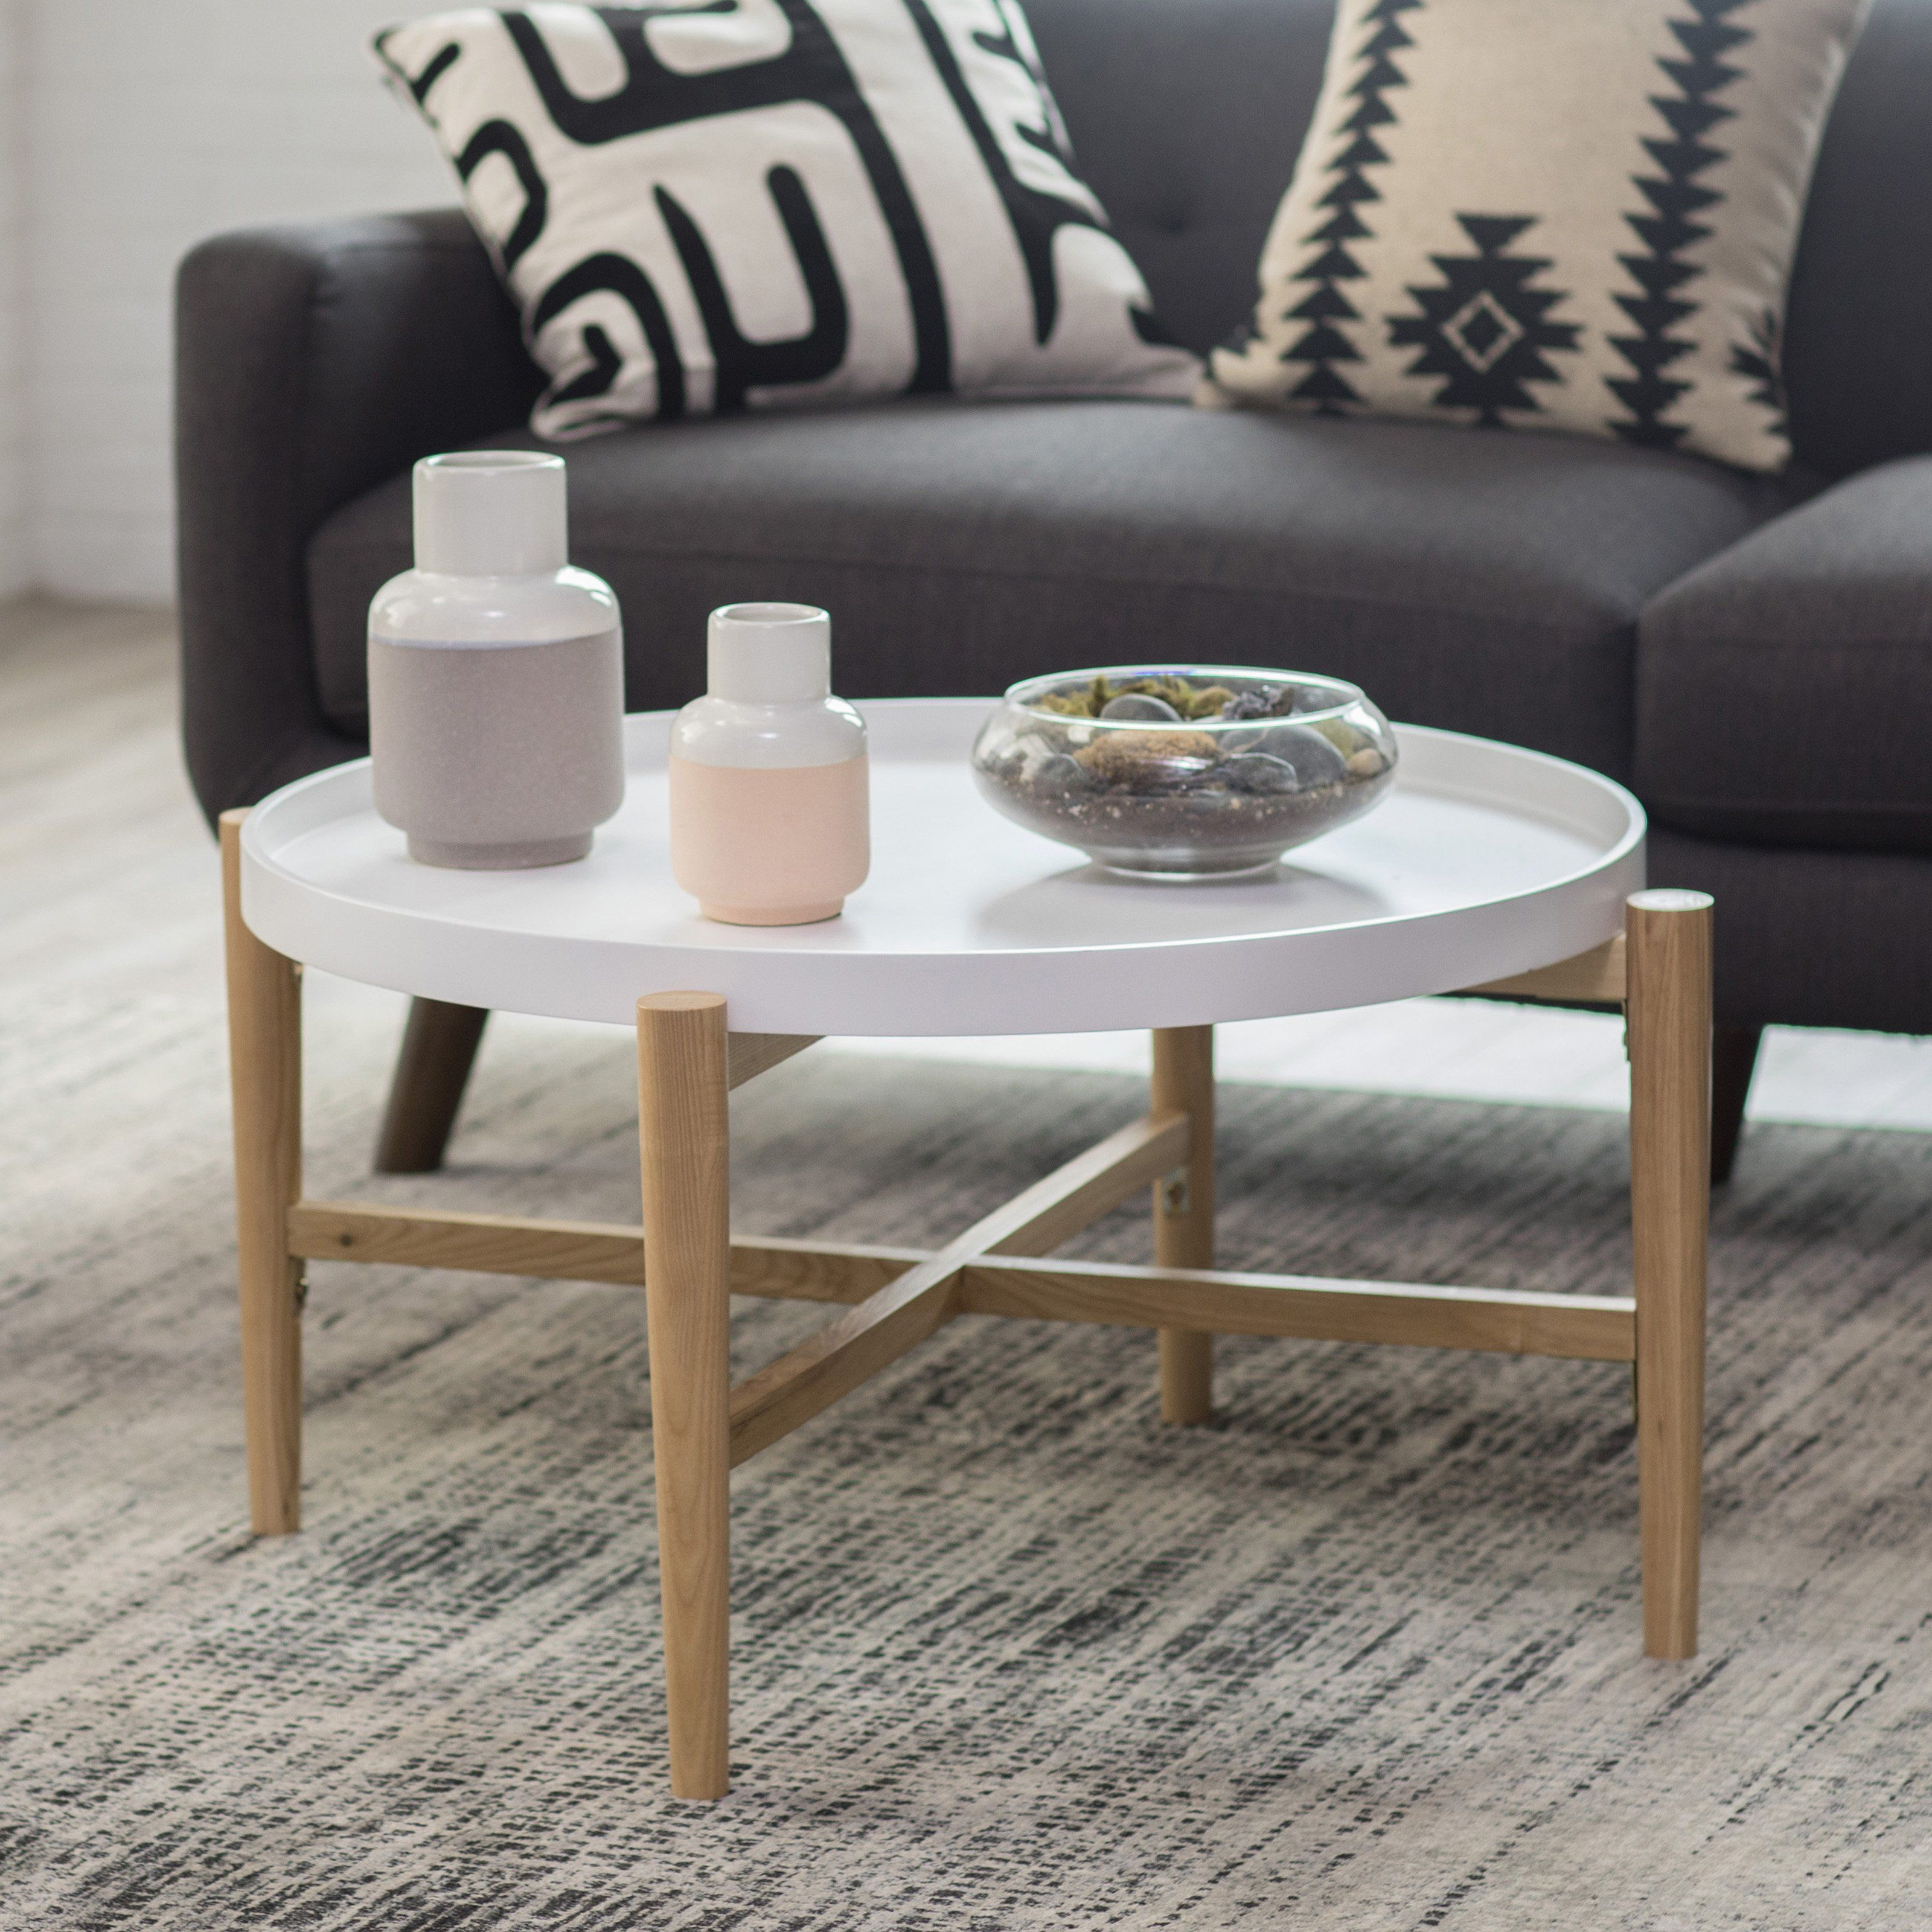 Belham Living Lincoln 2 Tone Tray Top Coffee Table White